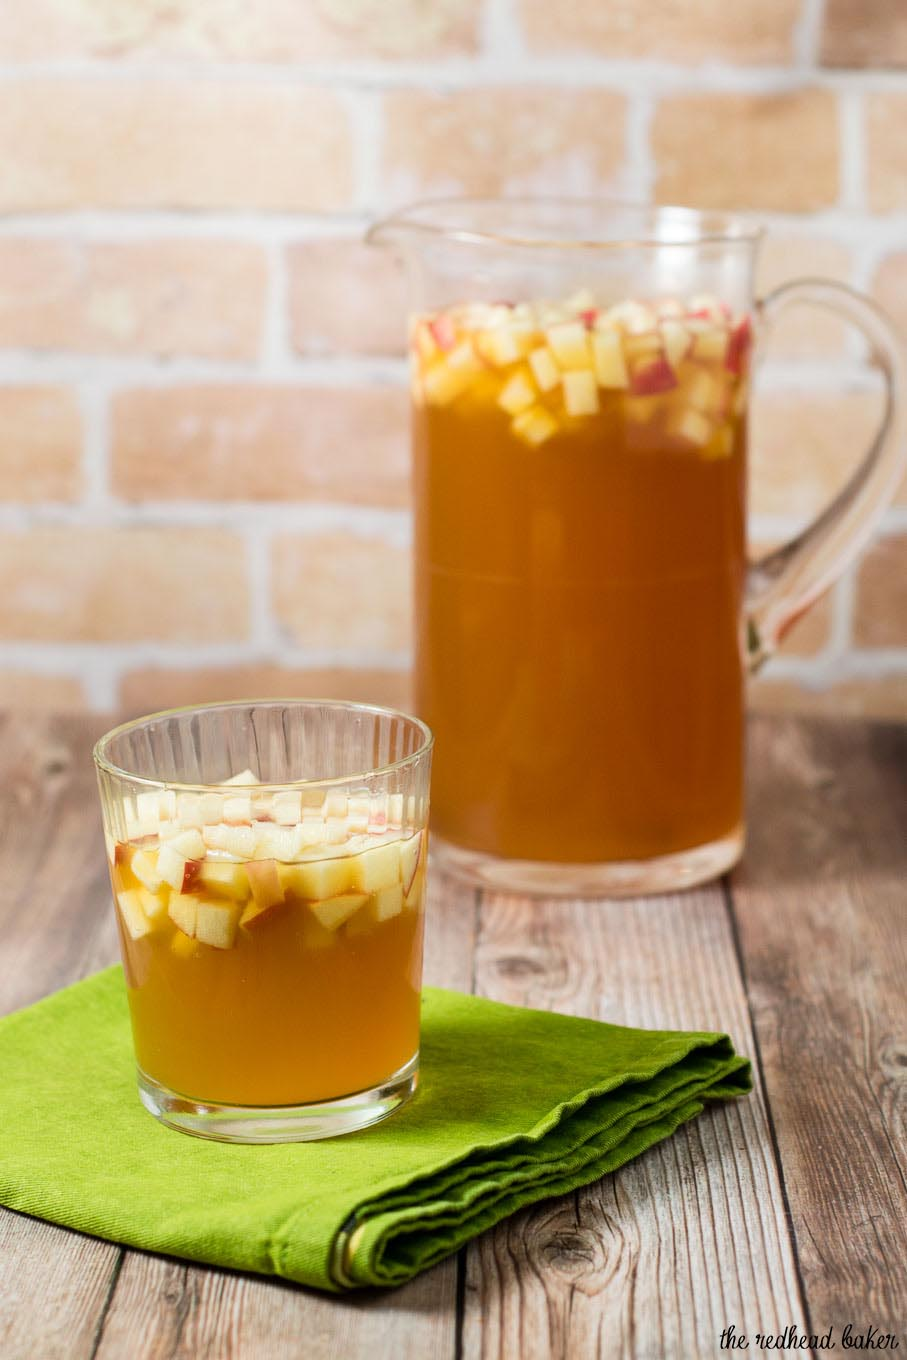 Cinnamon apple cider sangria is a delicious fall cocktail combining white wine, apple cider, apple brandy and cinnamon whiskey. #AppleWeek